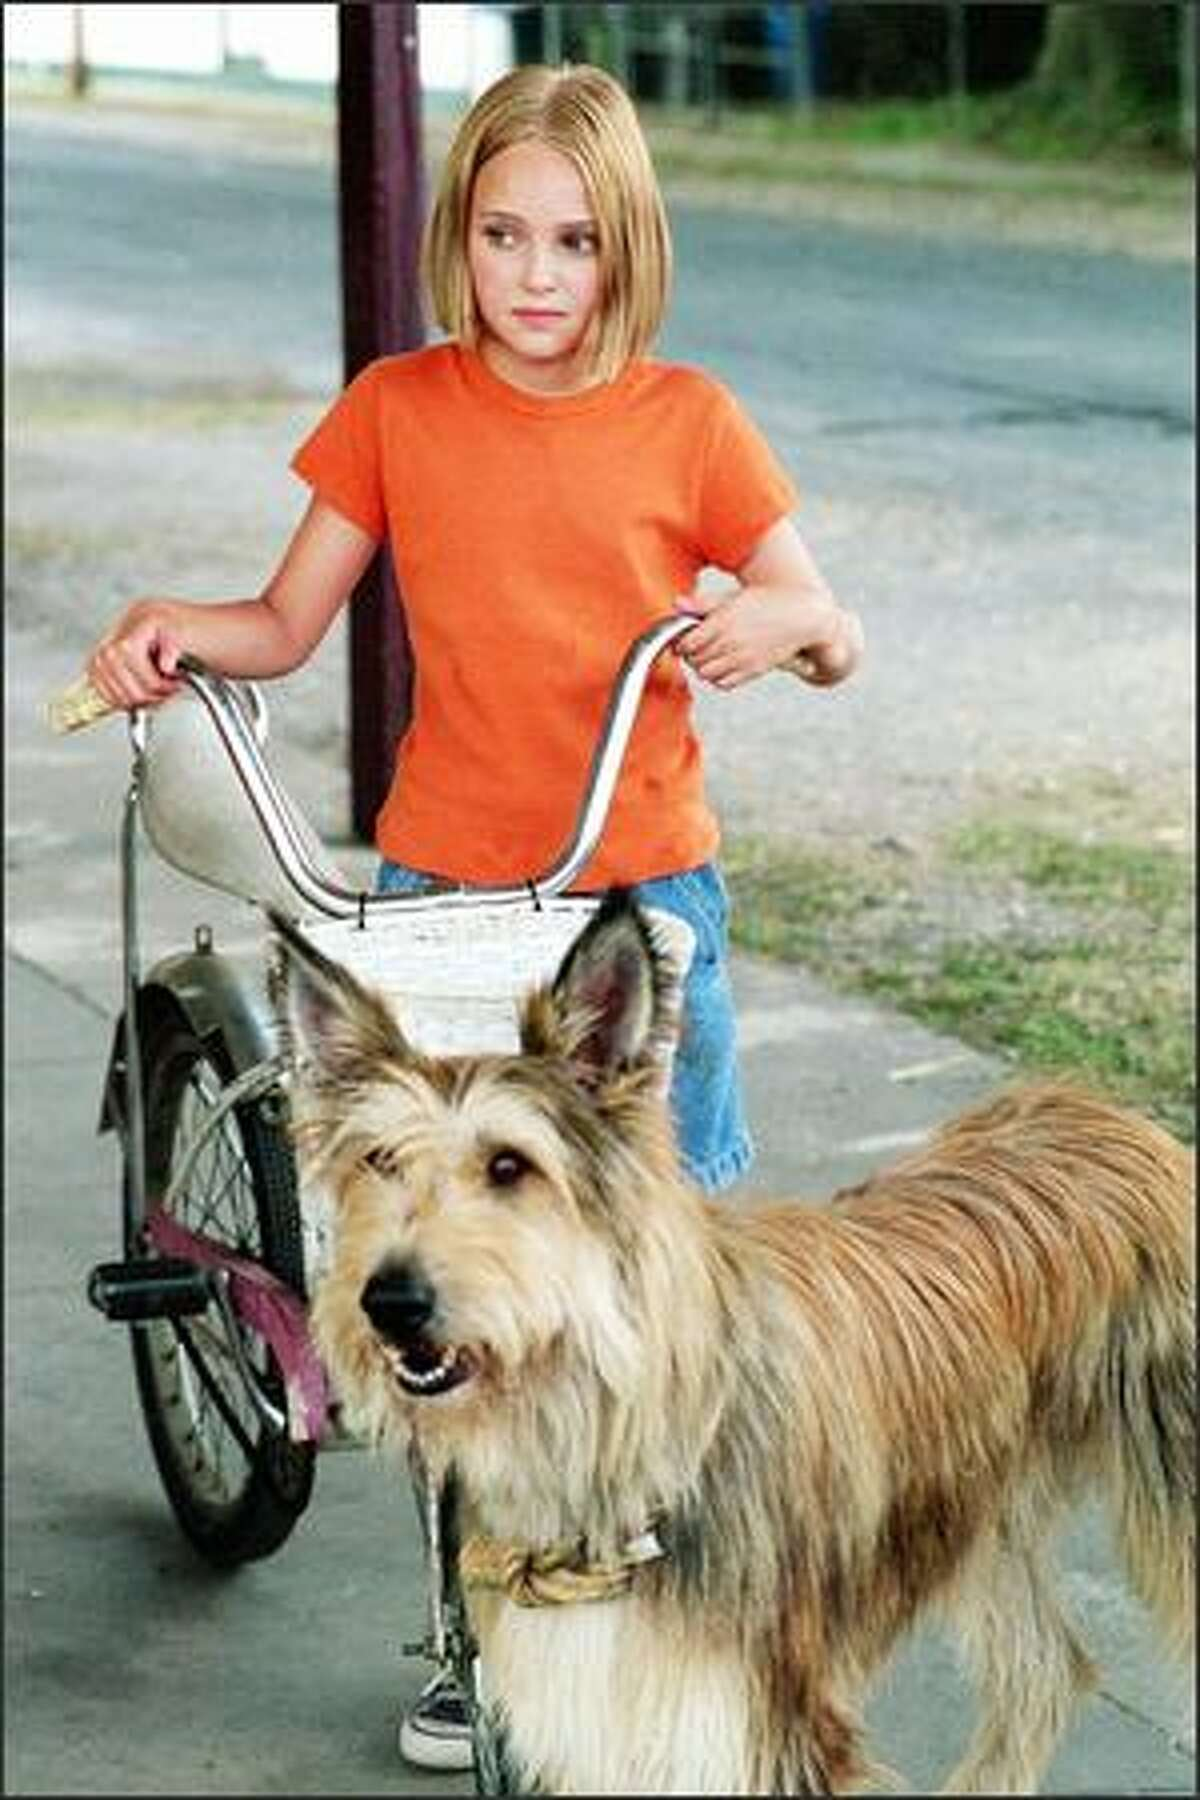 Opal (AnnaSophia Robb) and her new best friend Winn-Dixie are inseparable as they begin the work of transforming their southern town.